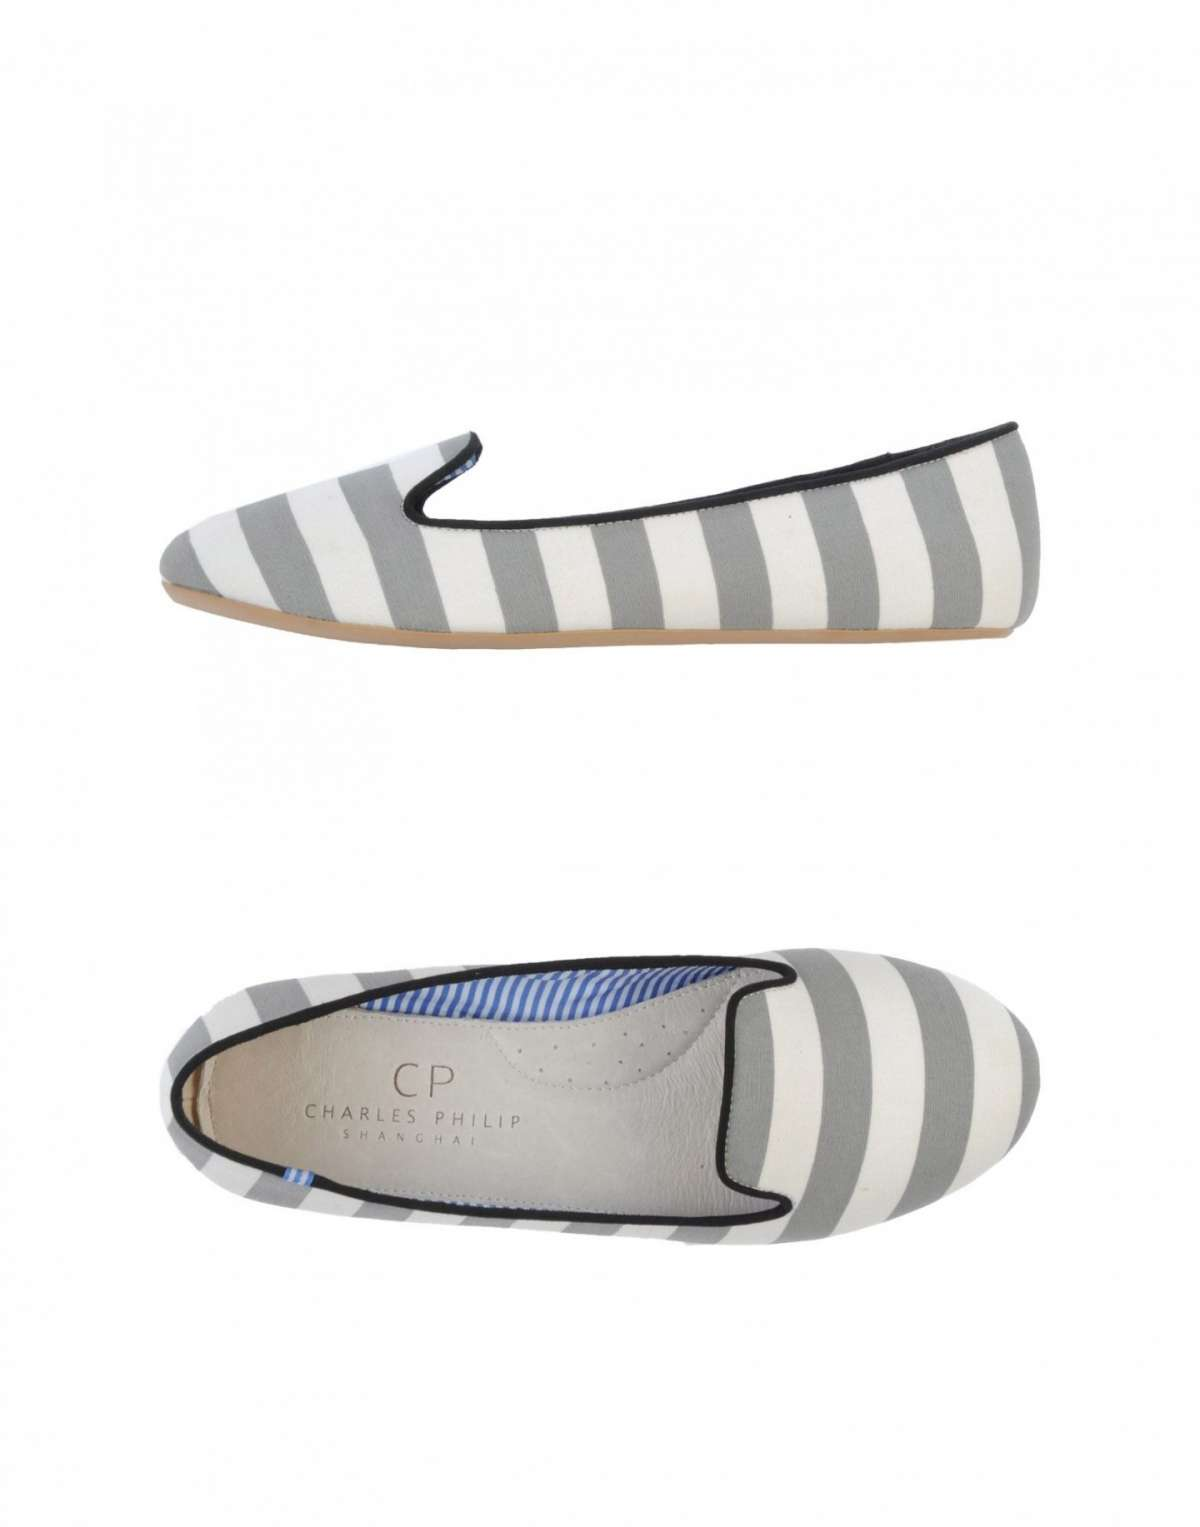 CP Charles Philip Shangai slipper a righe